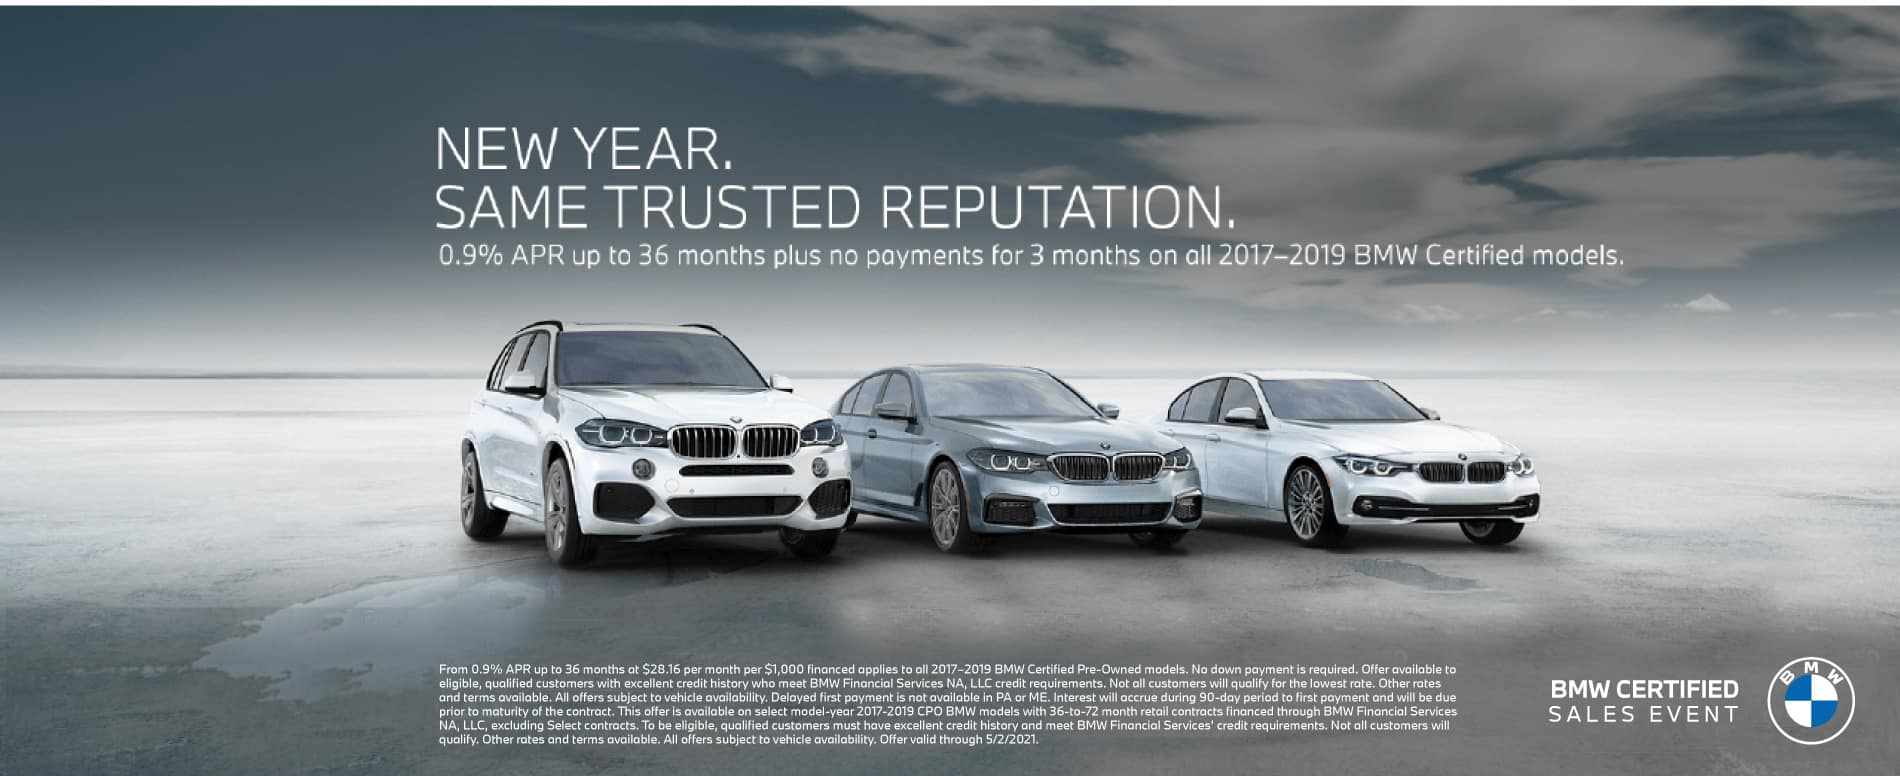 0.9% APR up to 36 months on BMW Certified models